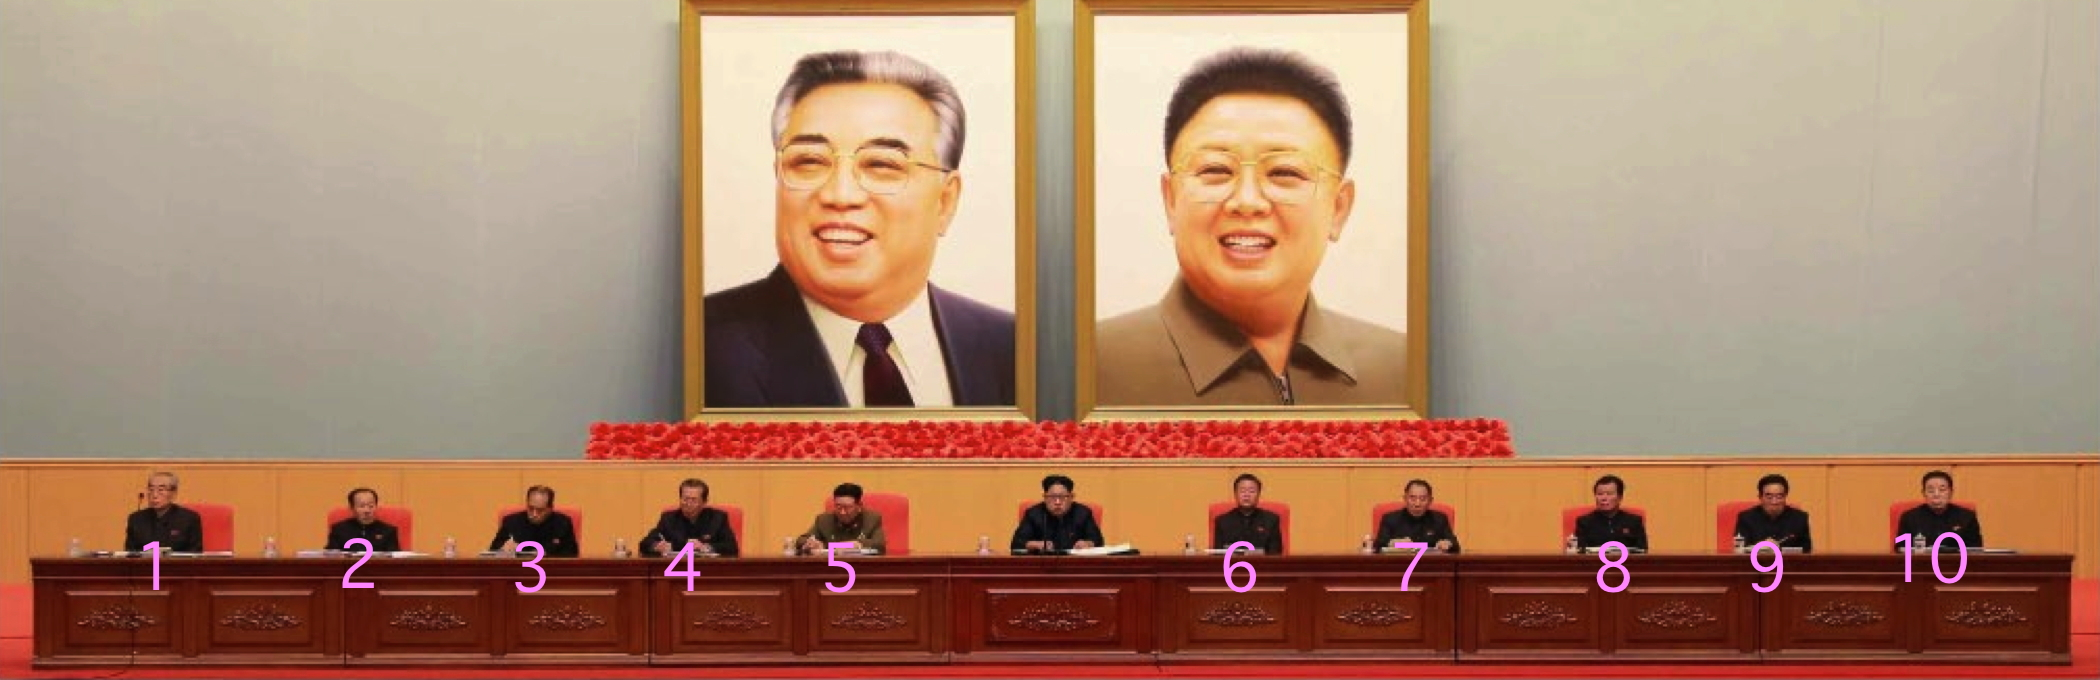 Platform at the expanded WPK CC and WPK KPA Committee meeting: Kim Ki Nam (1); Jo Yon Jun (2); Kwak Pom Gi (3); Choe T'ae Bok (4); Hwang Pyong So (5); Choe Ryong Hae (6); Kim Yong Chol (7) ; O Su Yong (8); Kim P'yo'ng-hae (9); and Kim Kyo'ng-ok (10) (Photo: Rodong Sinmun).